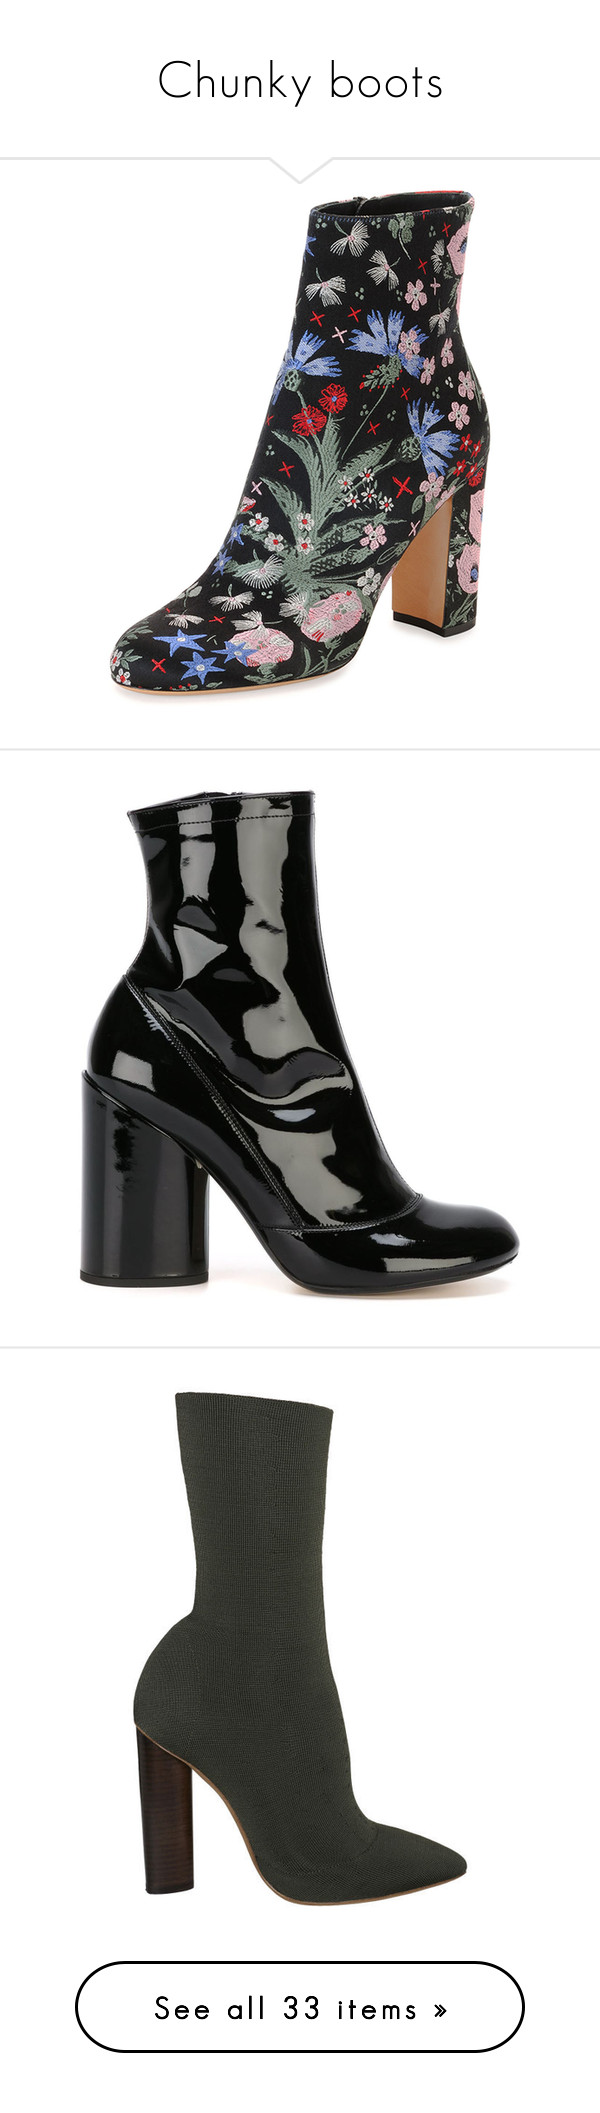 """""""Chunky boots"""" by laura-meldgaard ❤ liked on Polyvore featuring shoes, boots, multi, valentino boots, valentino shoes, black high heel shoes, black boots, floral boots, ankle booties and black"""